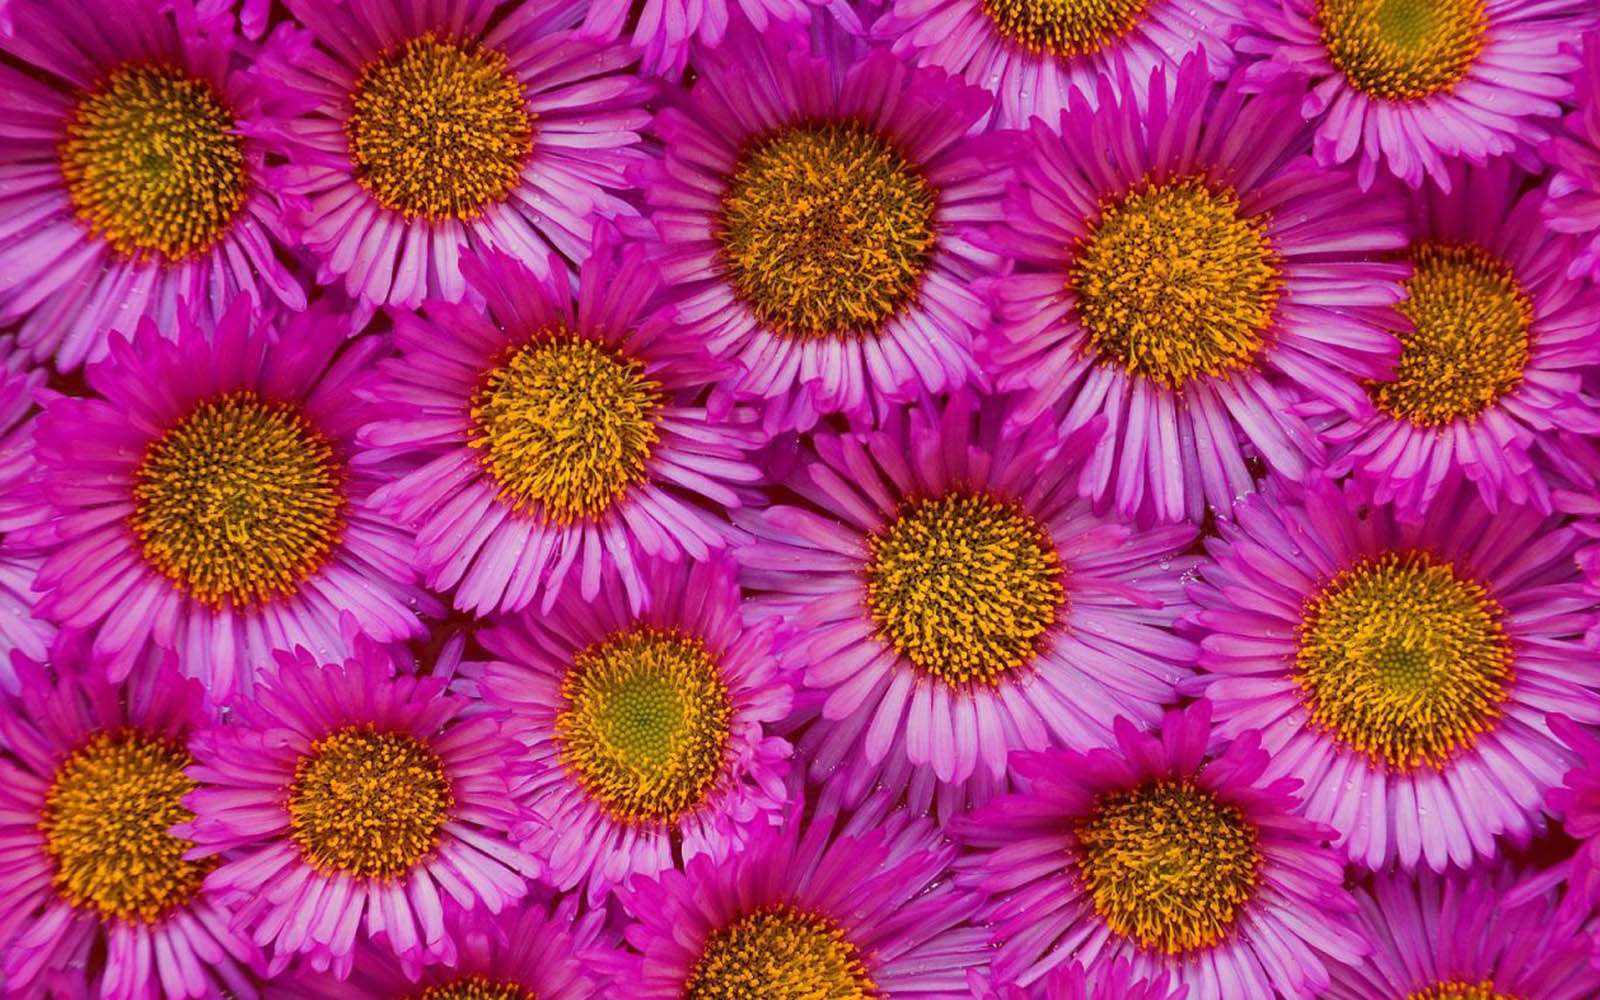 wallpaper: aster flowers wallpapers